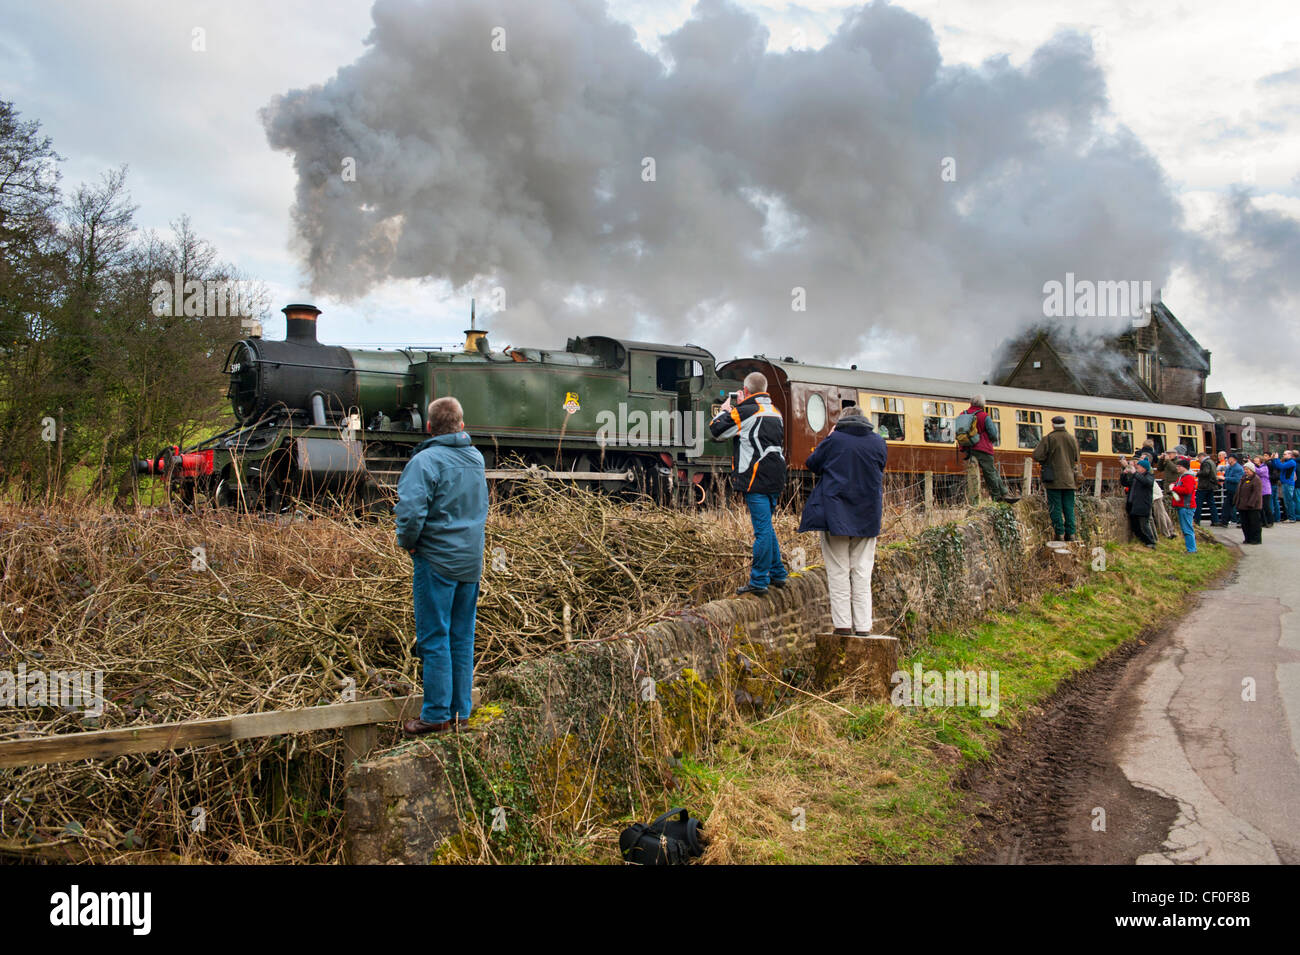 Ex-GWR Large Prairie Tank loco number 5199 takes a train out of Cheddleton on The Churnet Valley Railway, Staffordshire - Stock Image